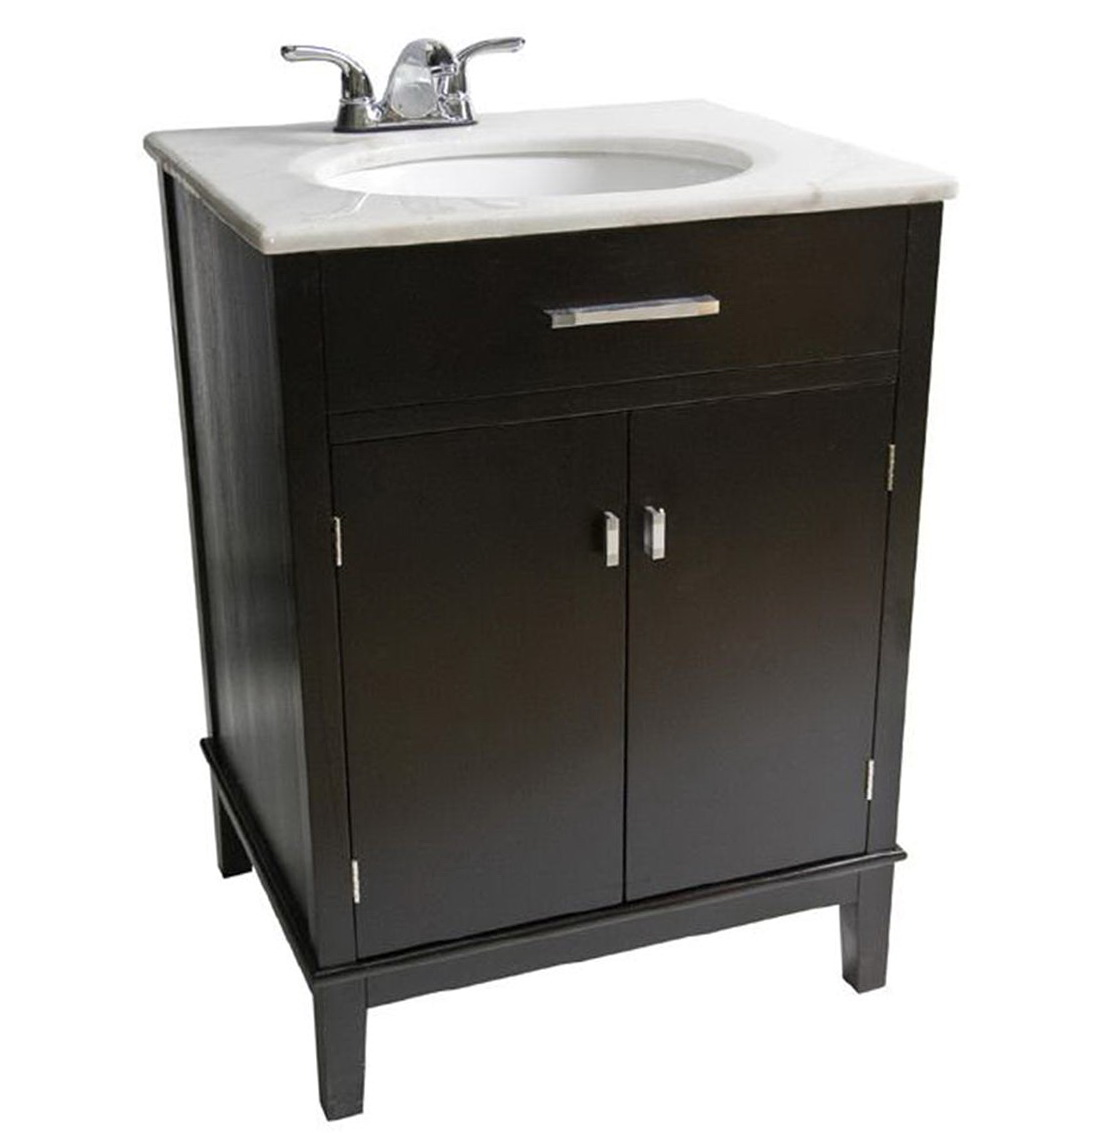 Vanity Top With Sink 30 Inch